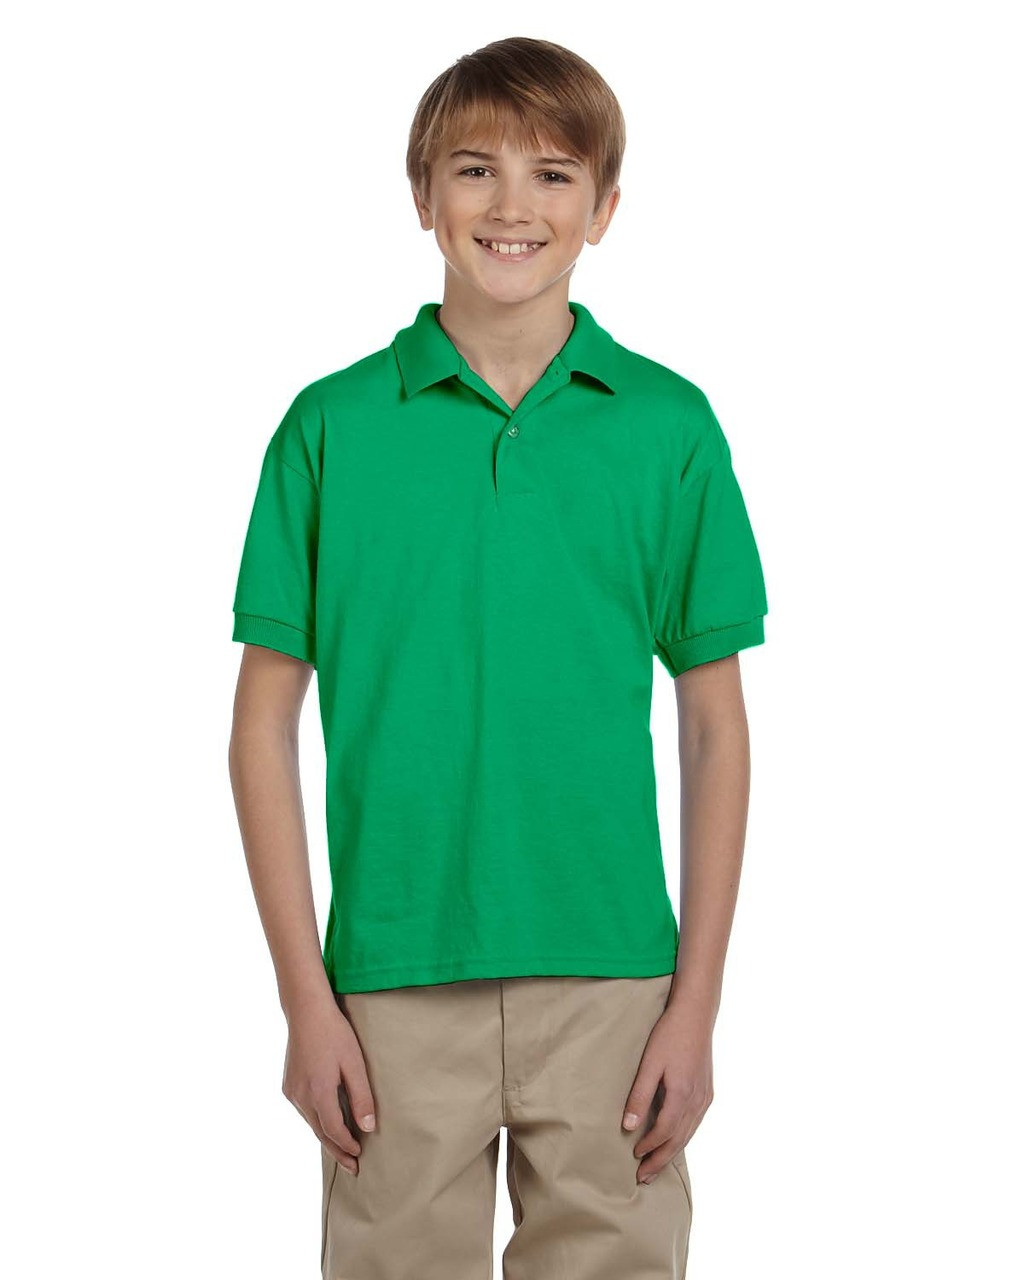 Irish Green - G880B Gildan DryBlend® Youth 50/50 Jersey Polo Shirt | Blankclothing.ca